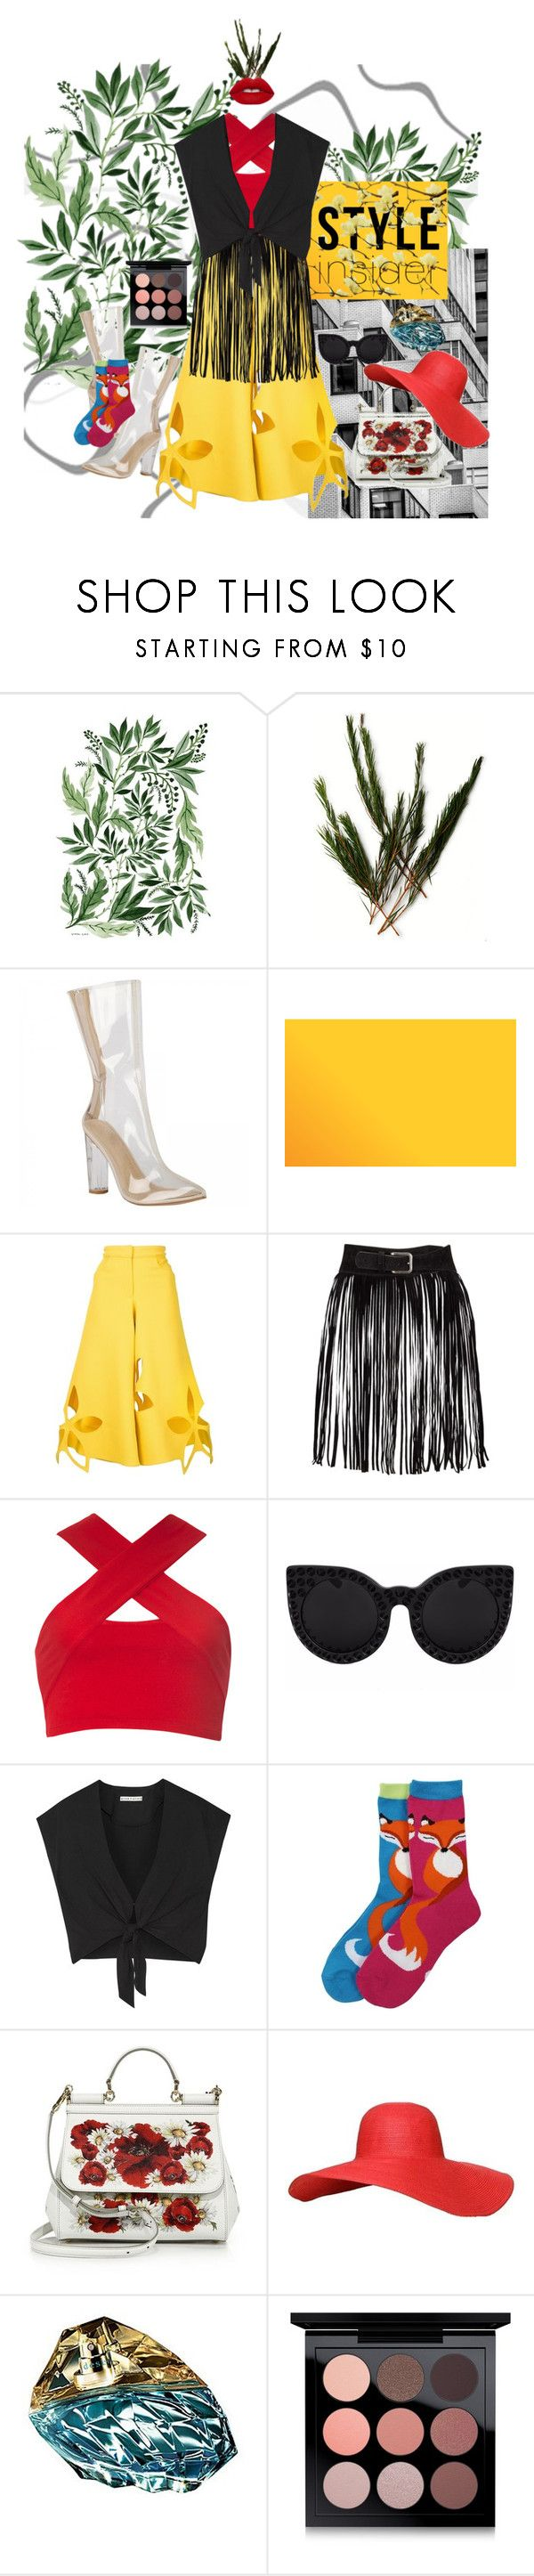 """Red plant"" by stapleluc on Polyvore featuring Rosie Assoulin, Motel, Alice + Olivia, Dolce&Gabbana, Jennifer Lopez, MAC Cosmetics, Lime Crime and modern"